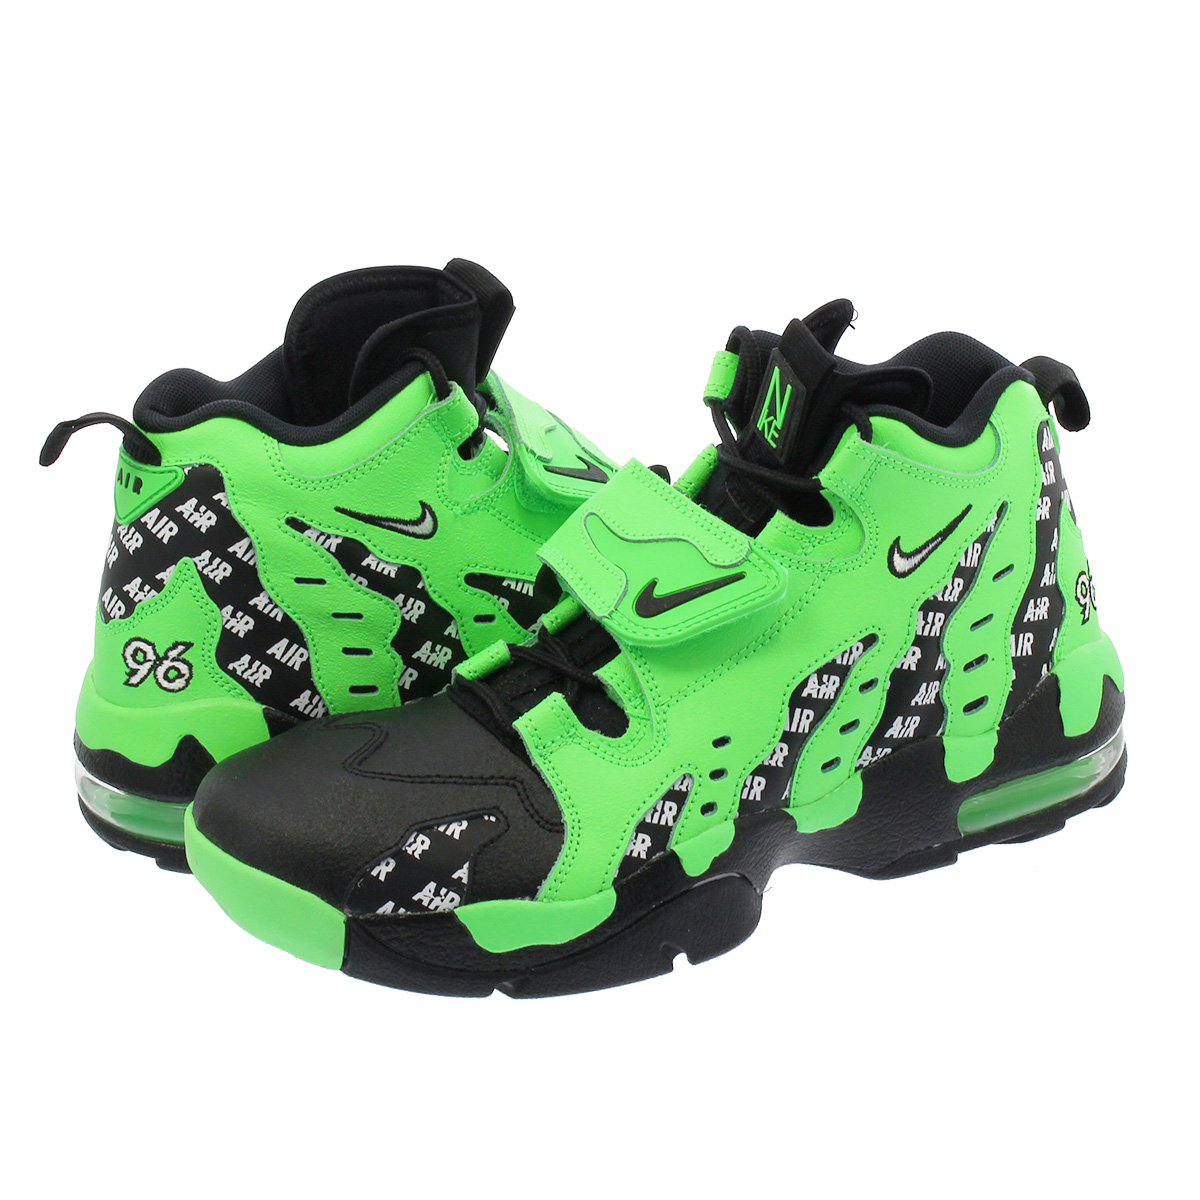 NIKE AIR DT MAX 96 SOA 【DEION SANDERS】 ナイキ エア DT マックス 96 RAGE GREEN/BLACK/WHITE aq5100-300